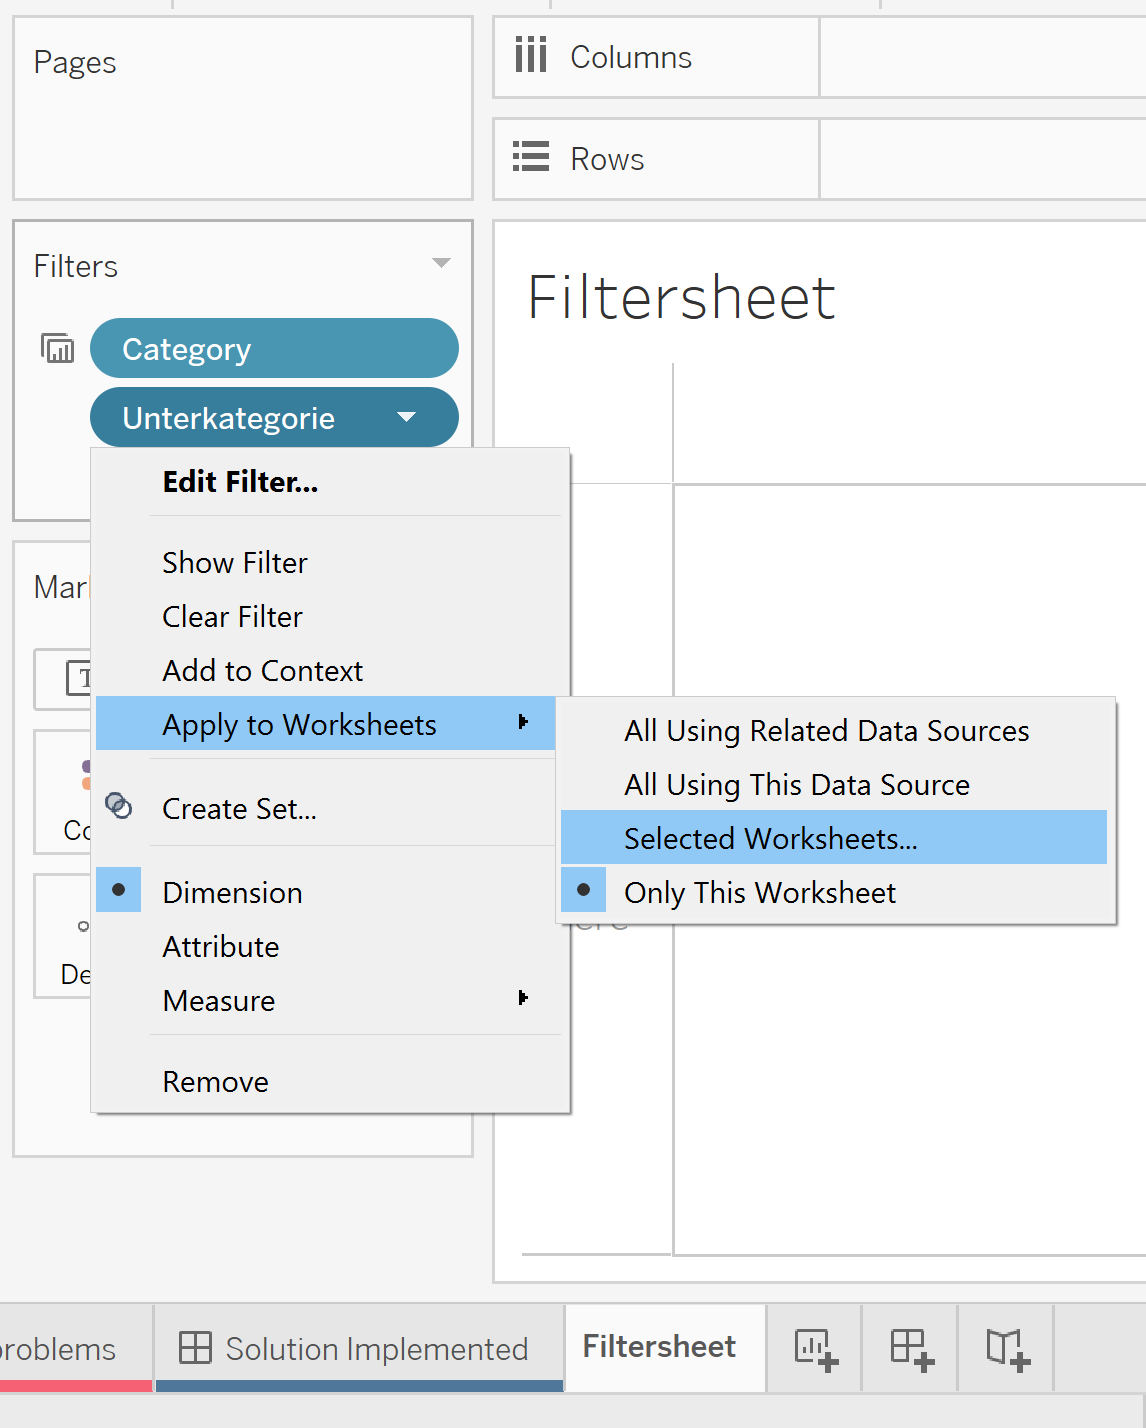 How to Create a Relevant Value Filter When Swapping Sheets in